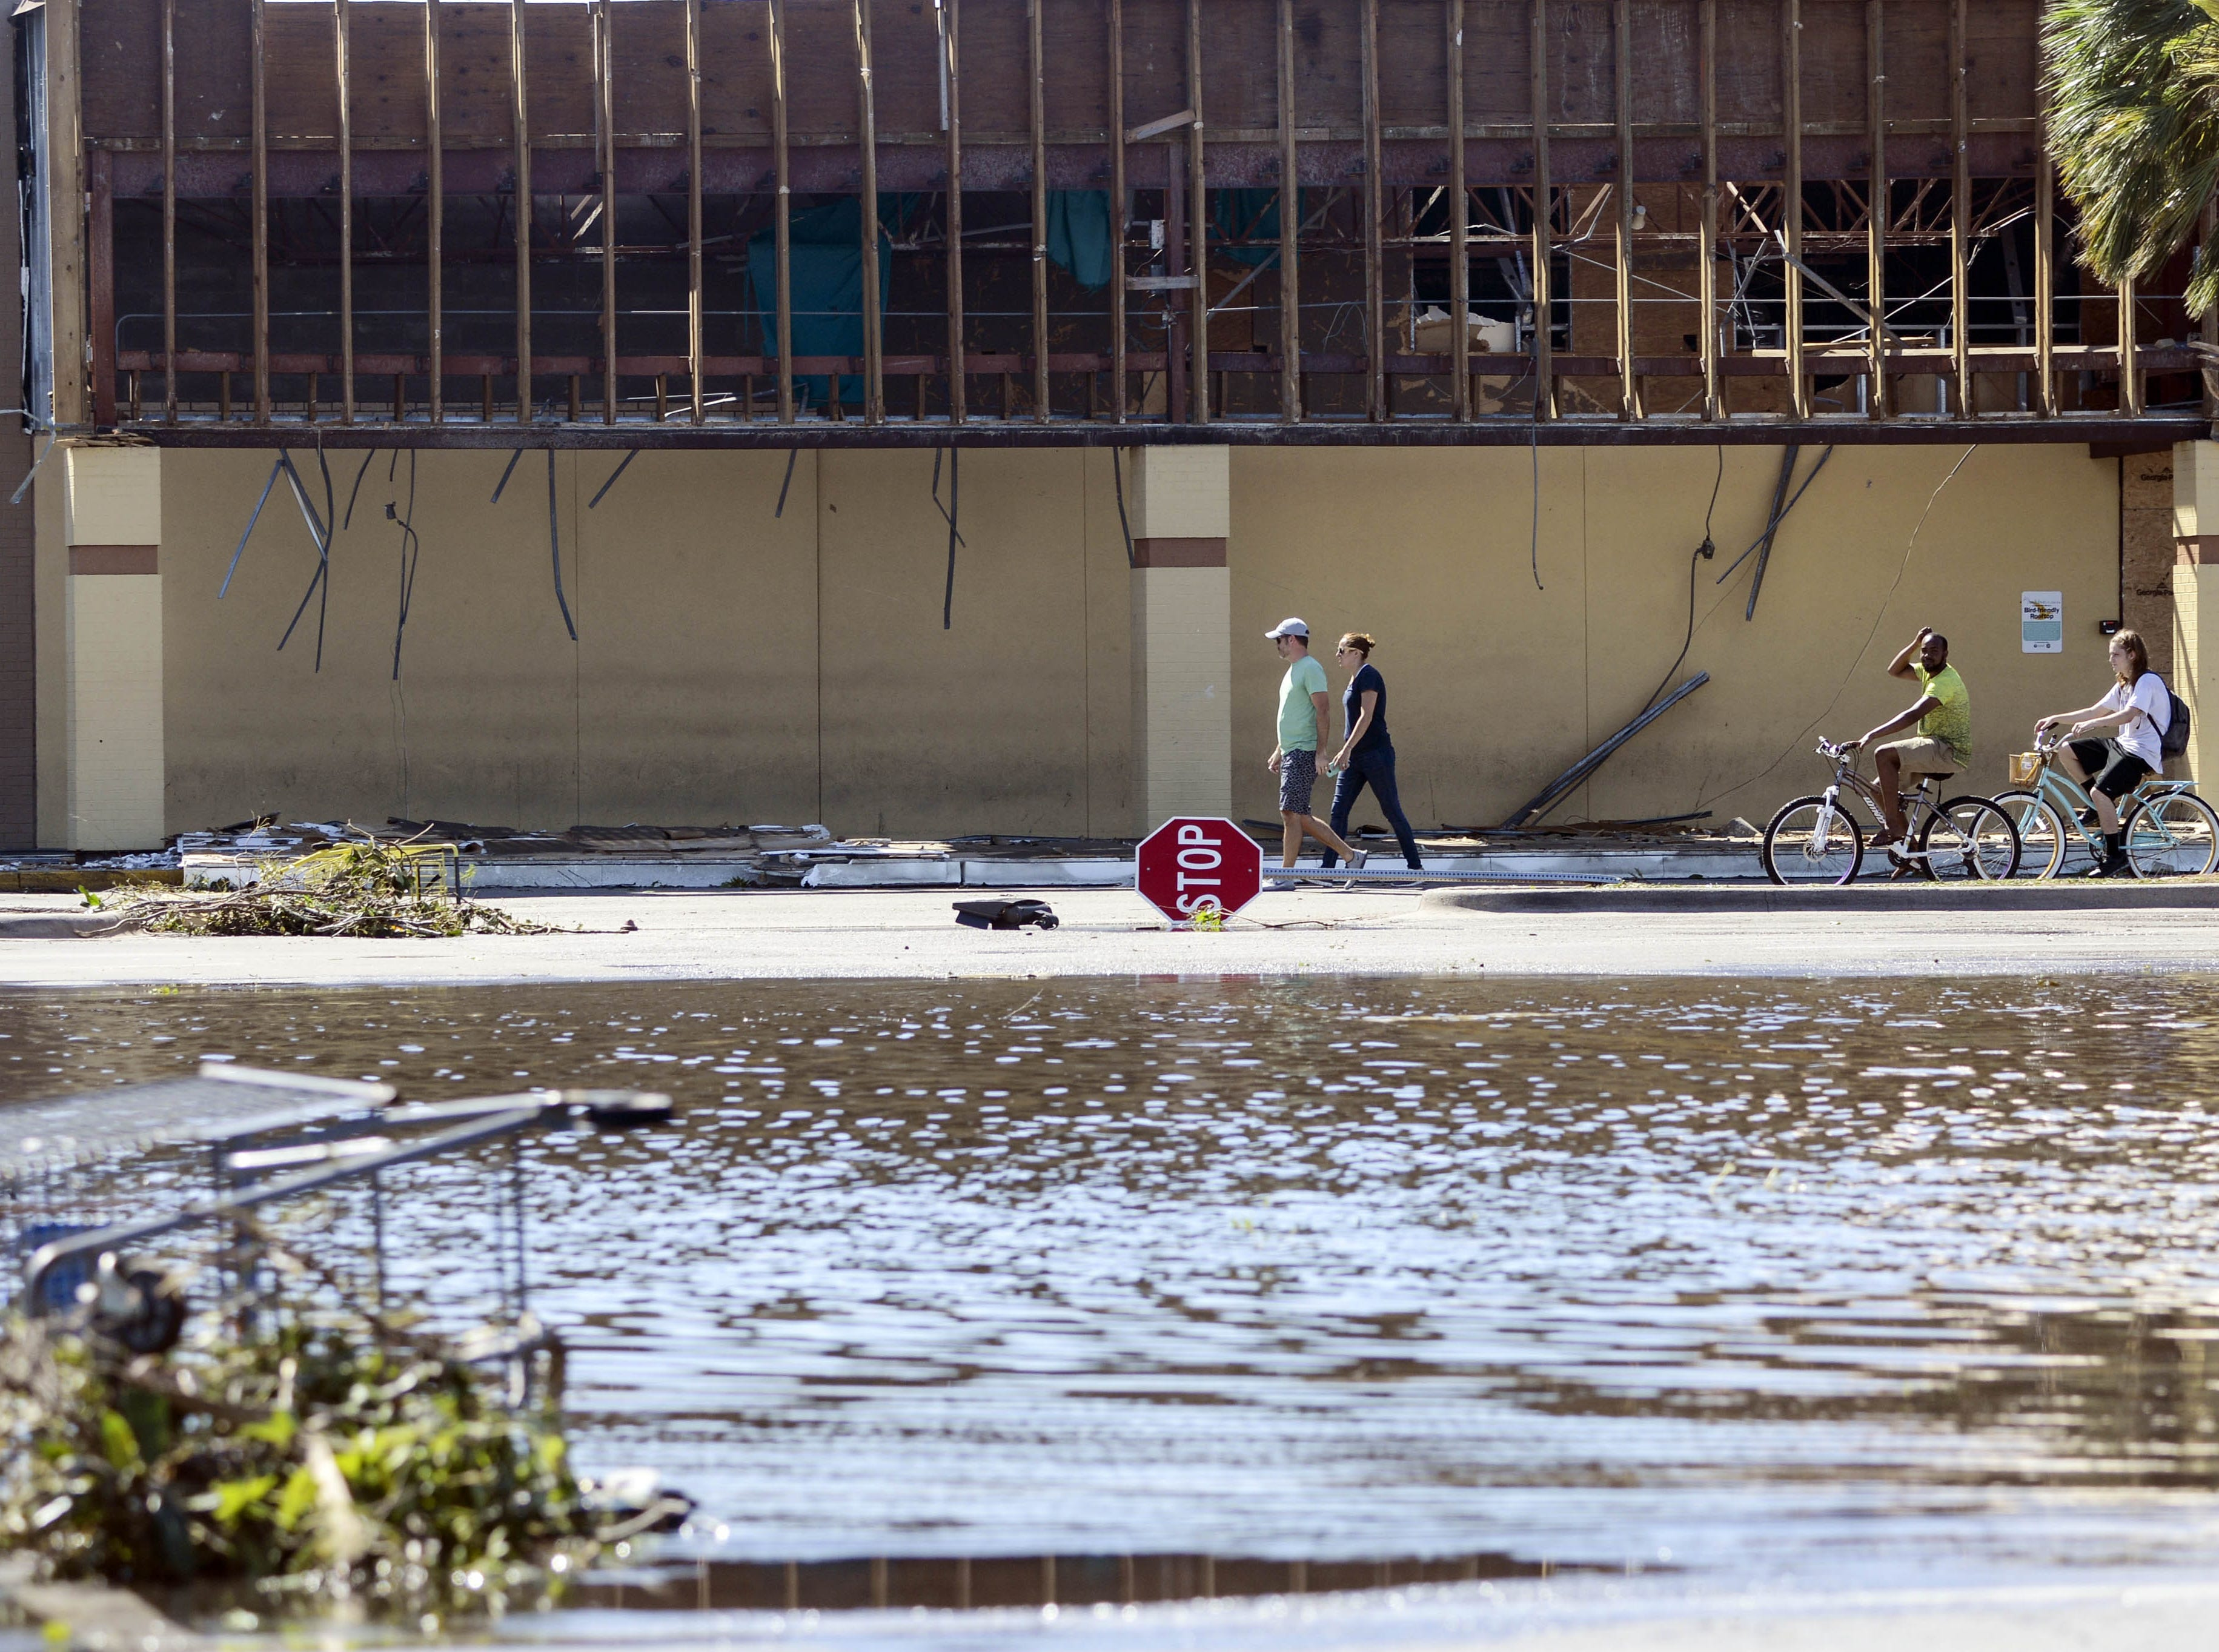 Pedestrians walk and ride through a flooded parking lot in the Panama City Square shopping center in Panama City.